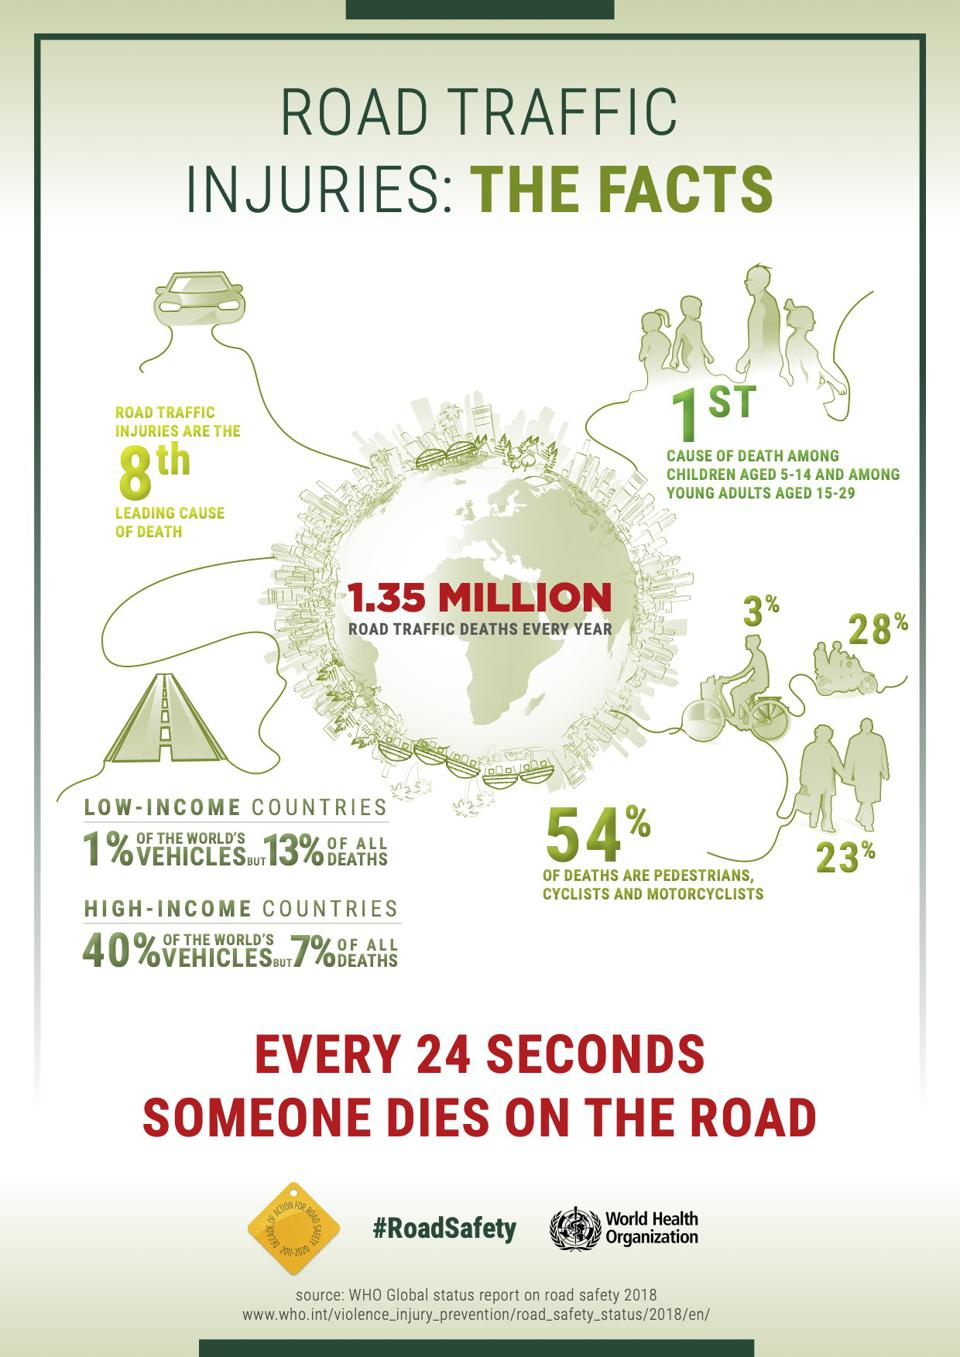 A W.H.O. graphic details the death toll on the world's roads.